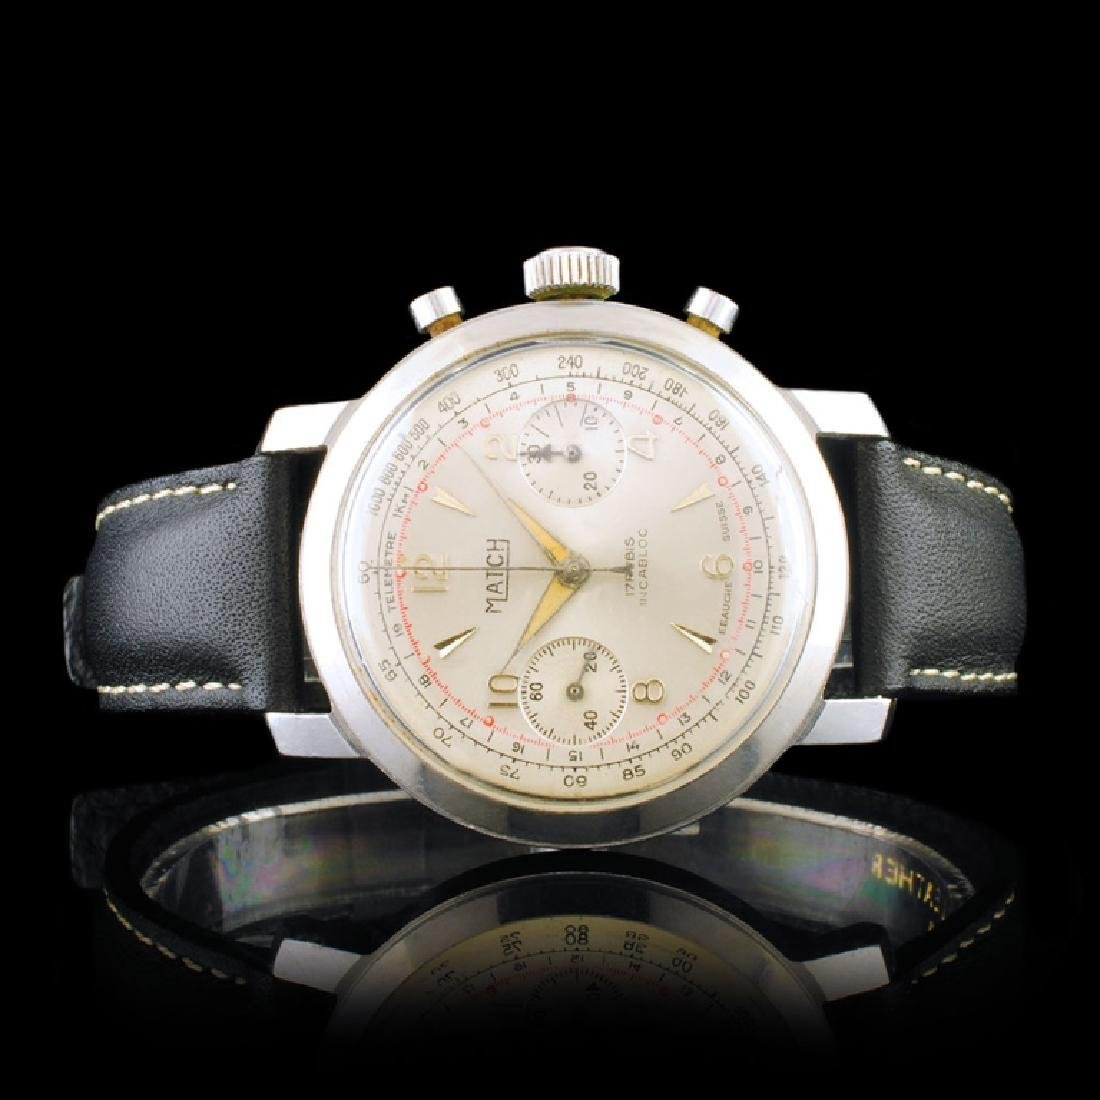 MATCH Suisse Stainless Steel 36mm Chronograph